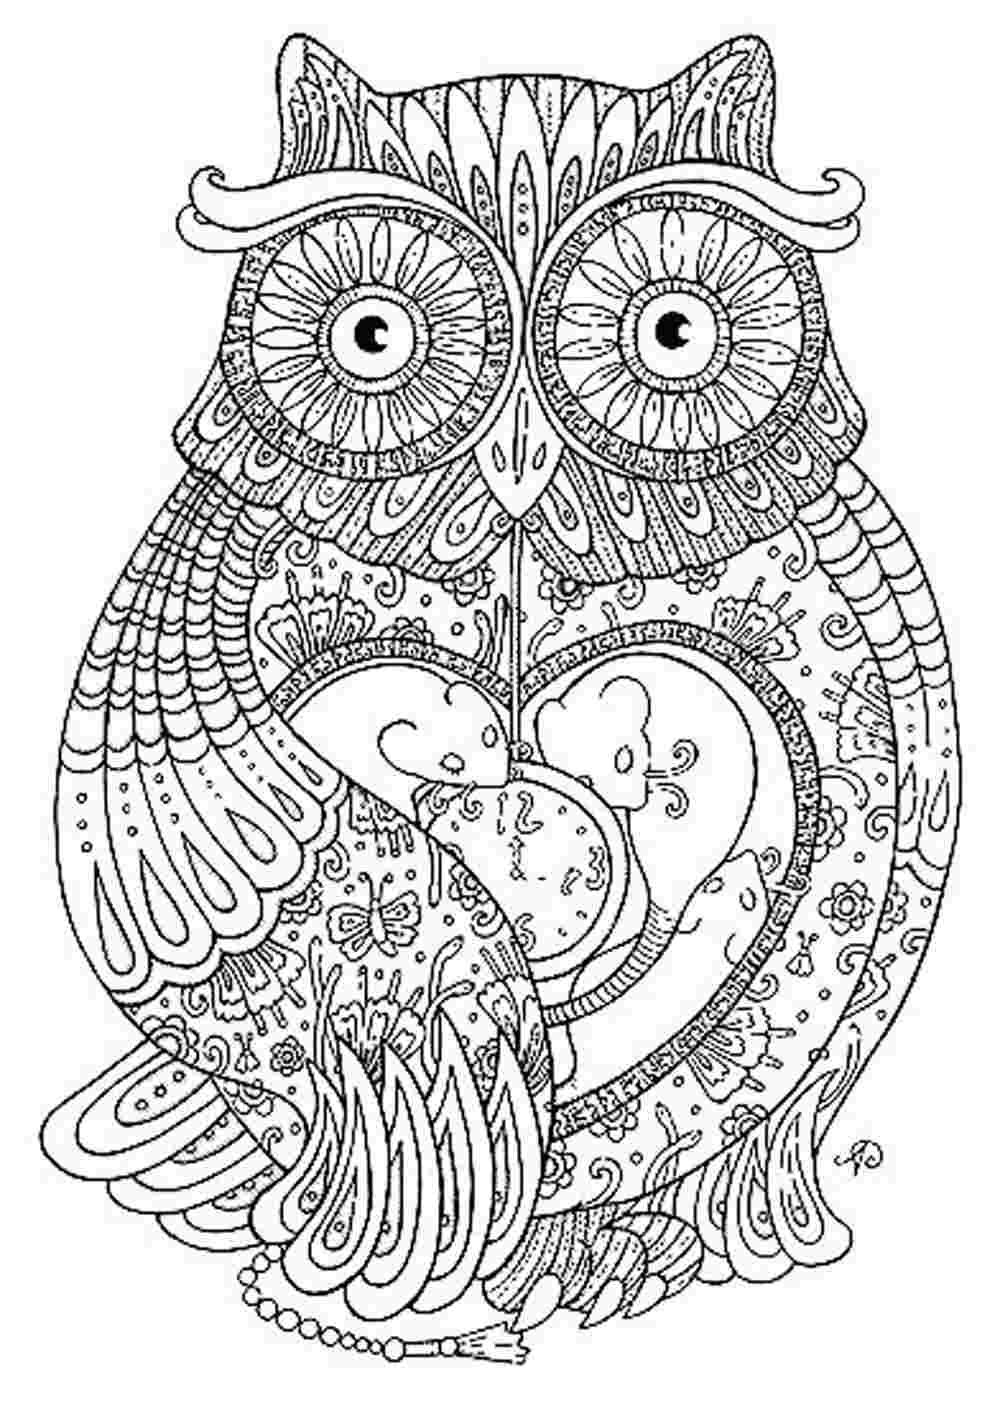 Printable coloring books adults - Free Adult Coloring Pages